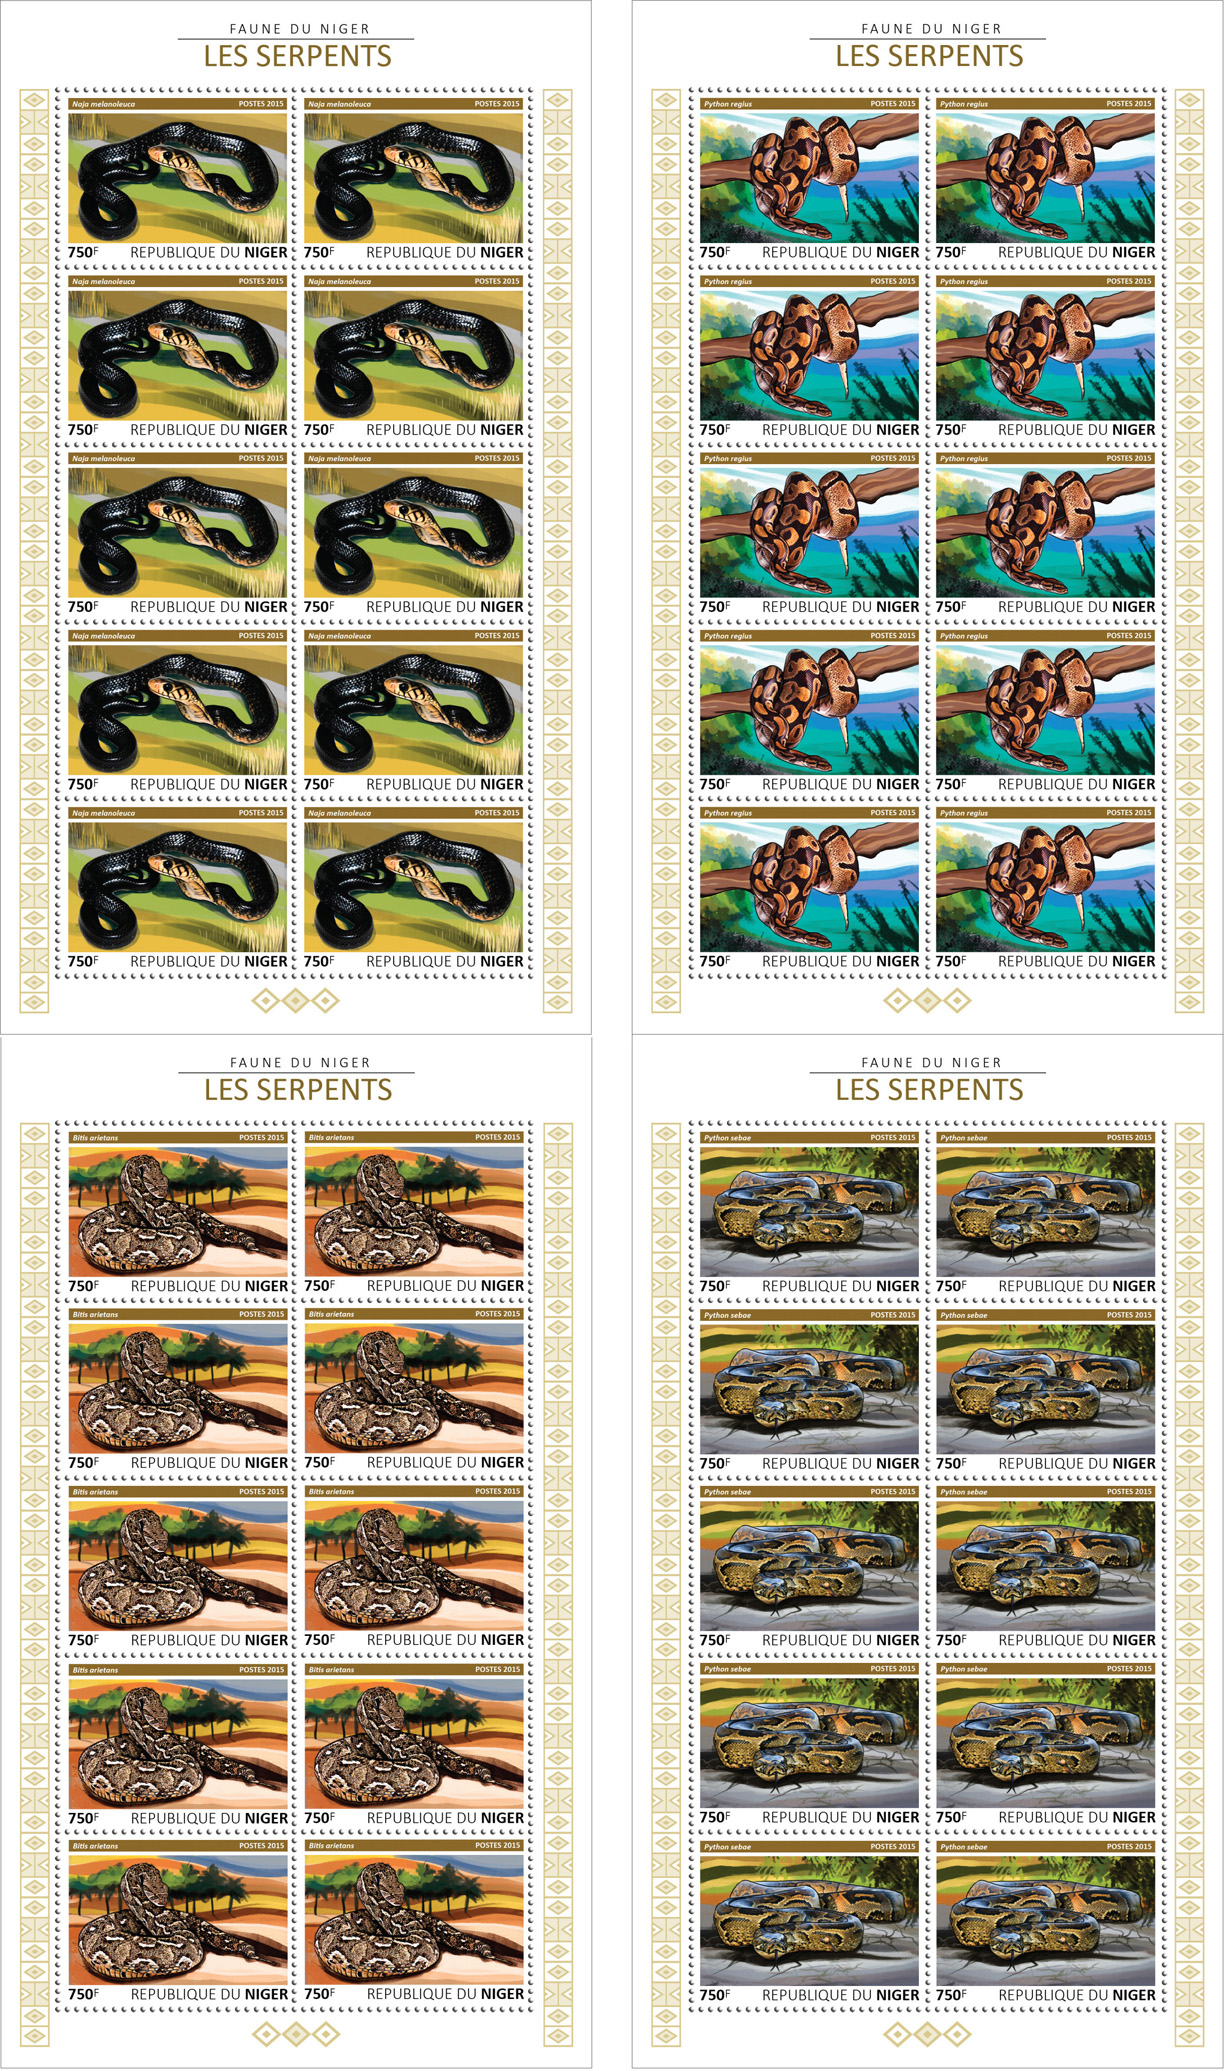 Snakes 4x10v - Issue of Niger postage stamps